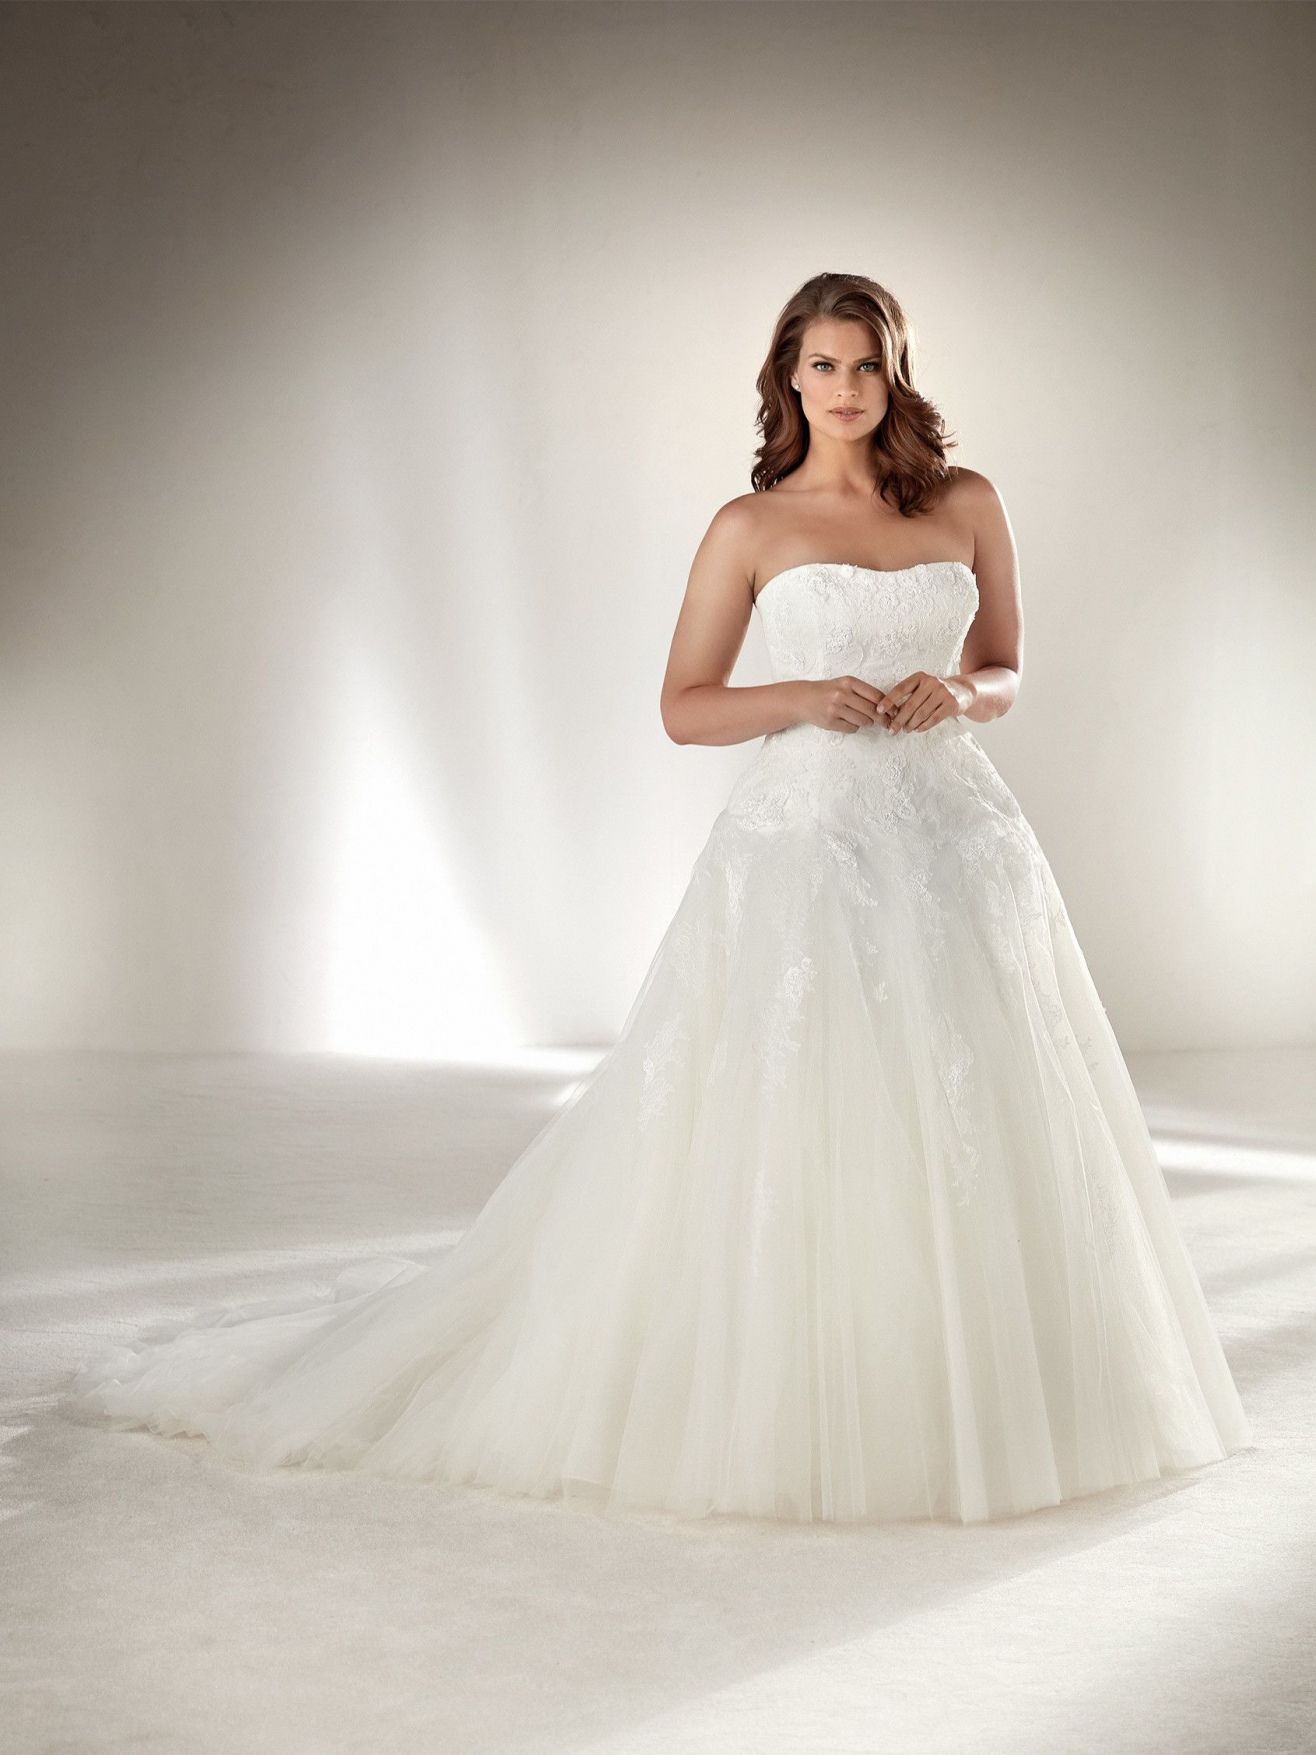 Exceptional 2018 Wedding Dresses Virginia Beach   Dresses For Wedding Party Check More  At Http:/